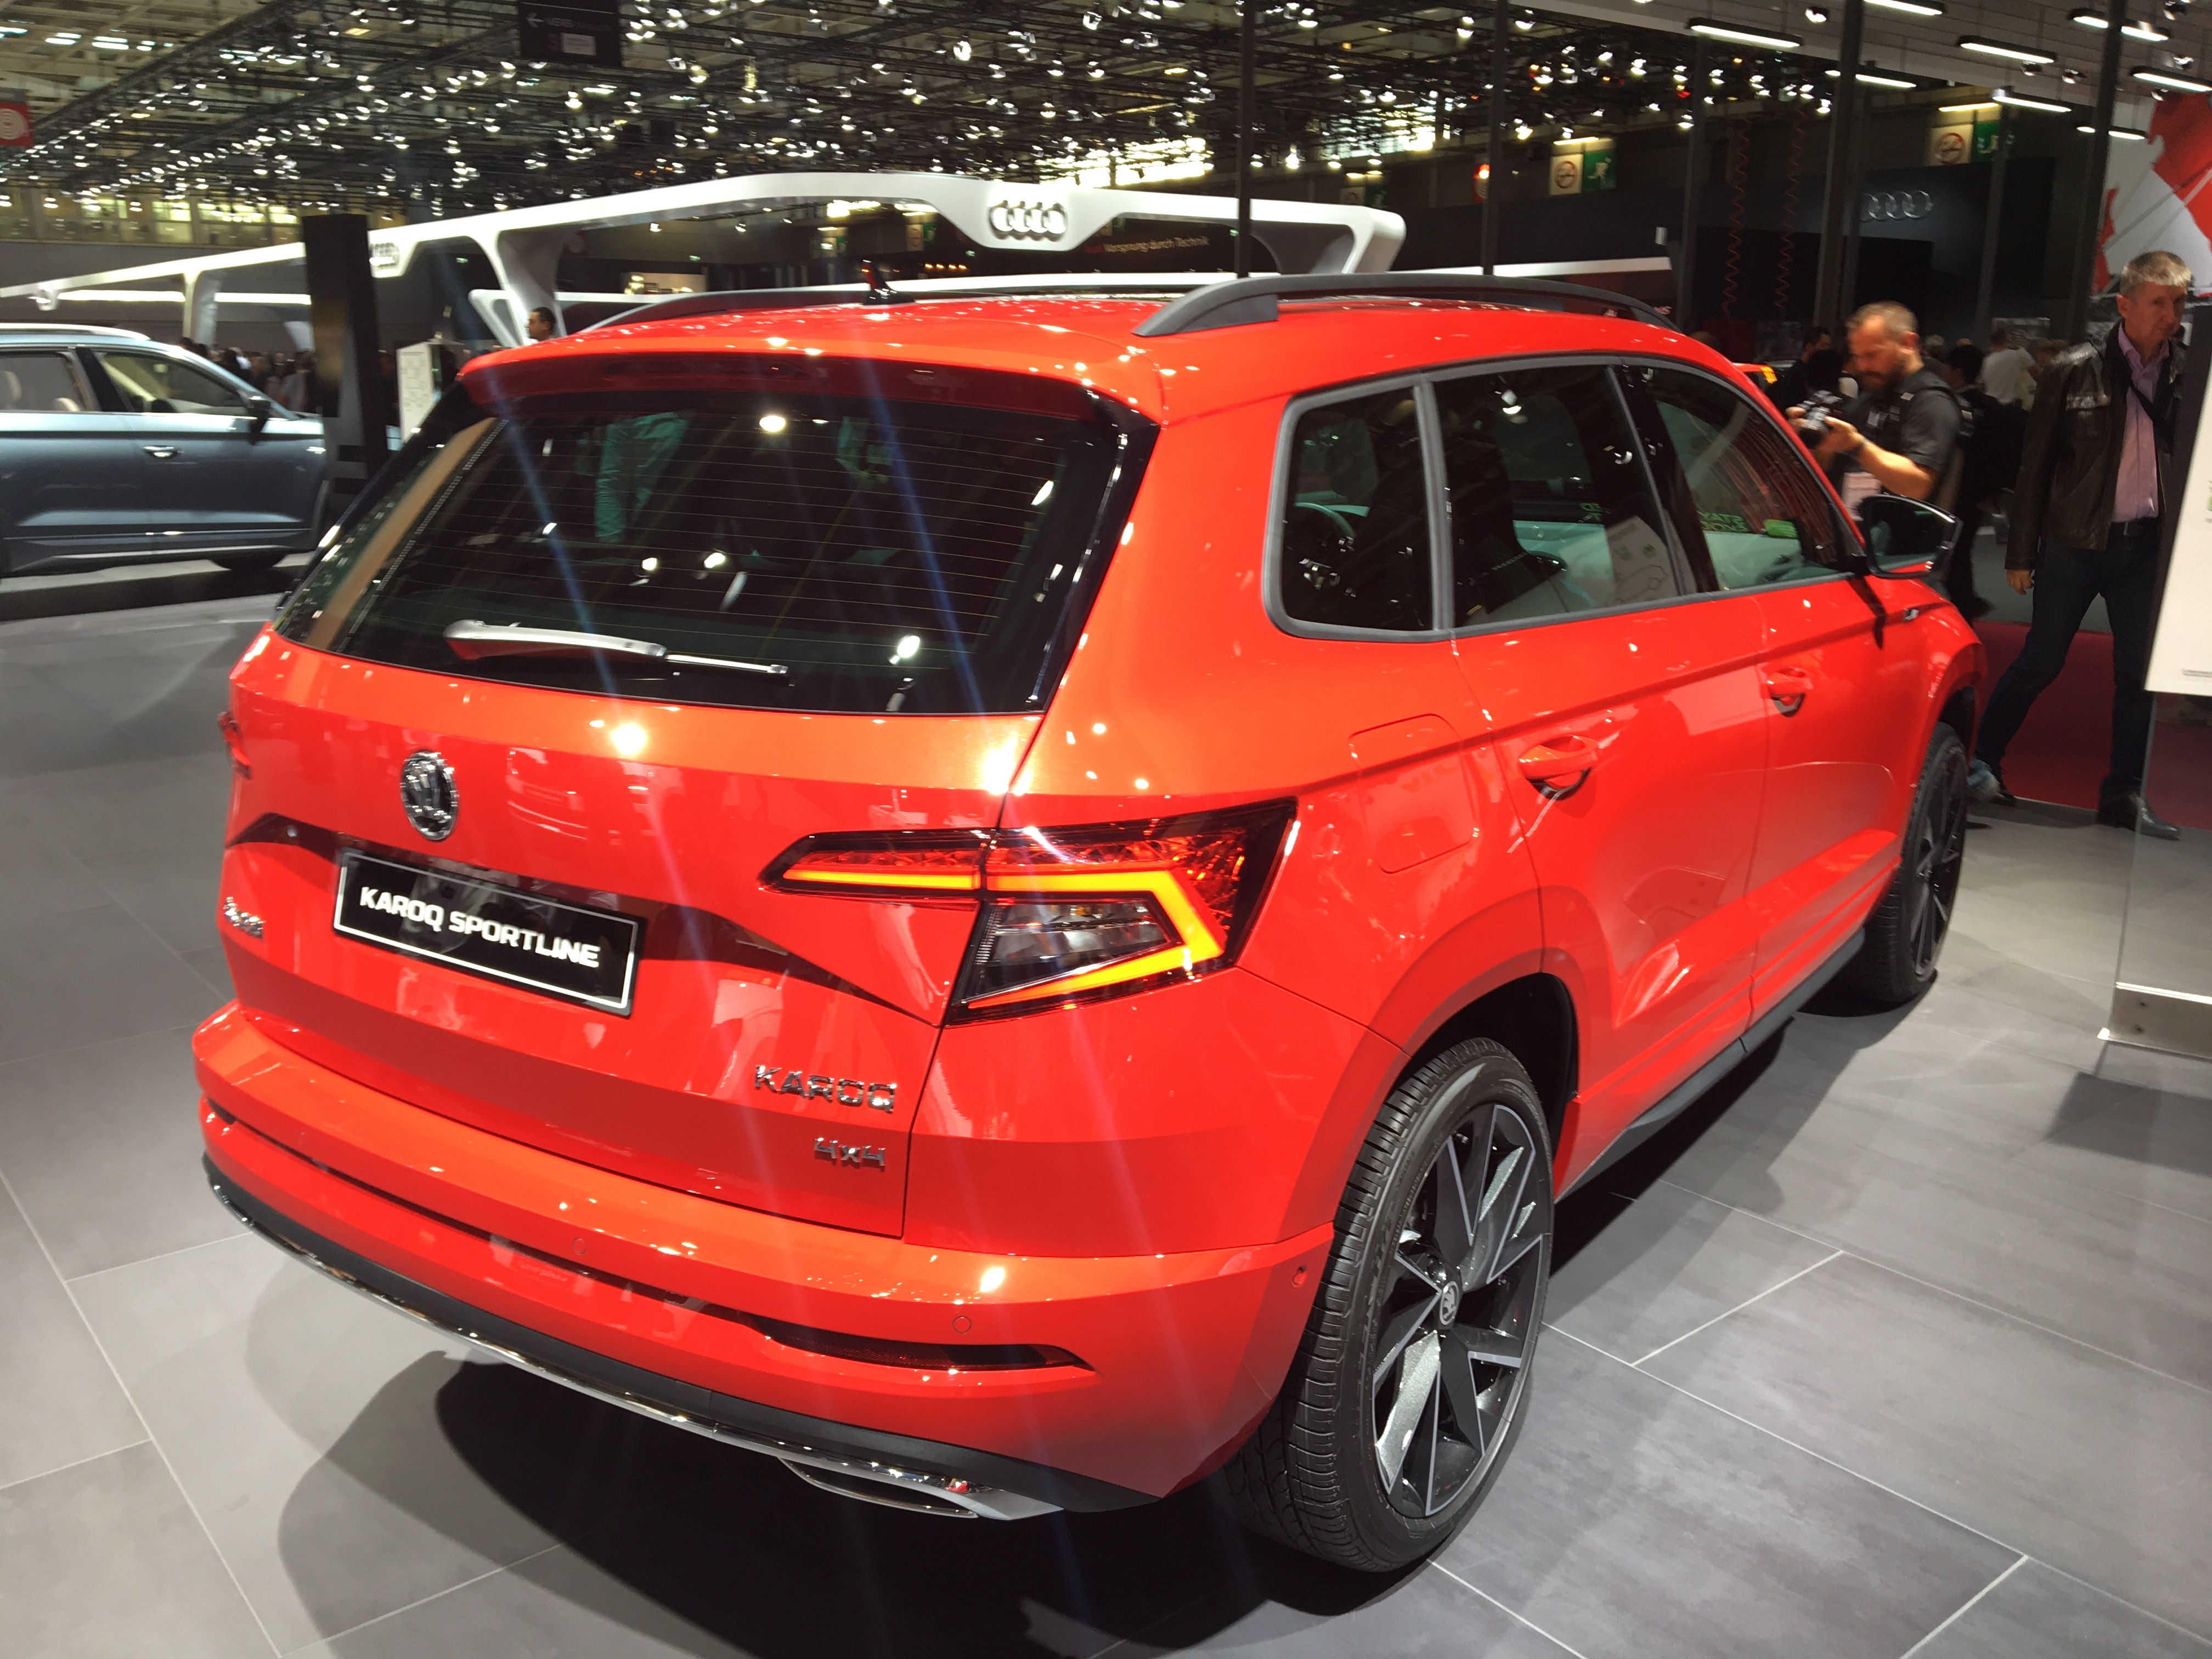 skoda karoq sportline une nouvelle finition en direct du mondial de l 39 auto. Black Bedroom Furniture Sets. Home Design Ideas